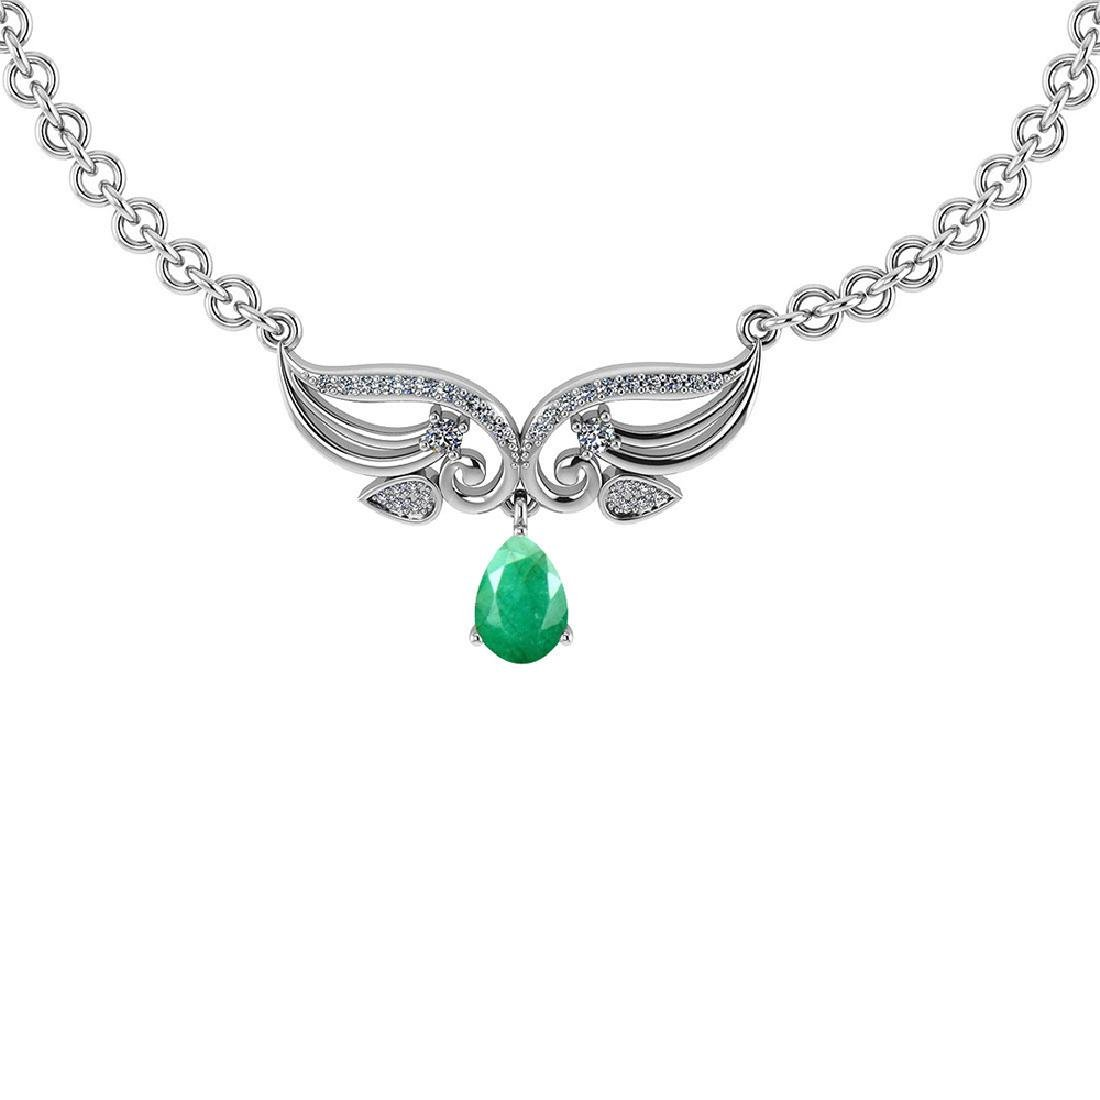 Certified 3.94 CTW Genuine Emerald And Diamond 14k Whit